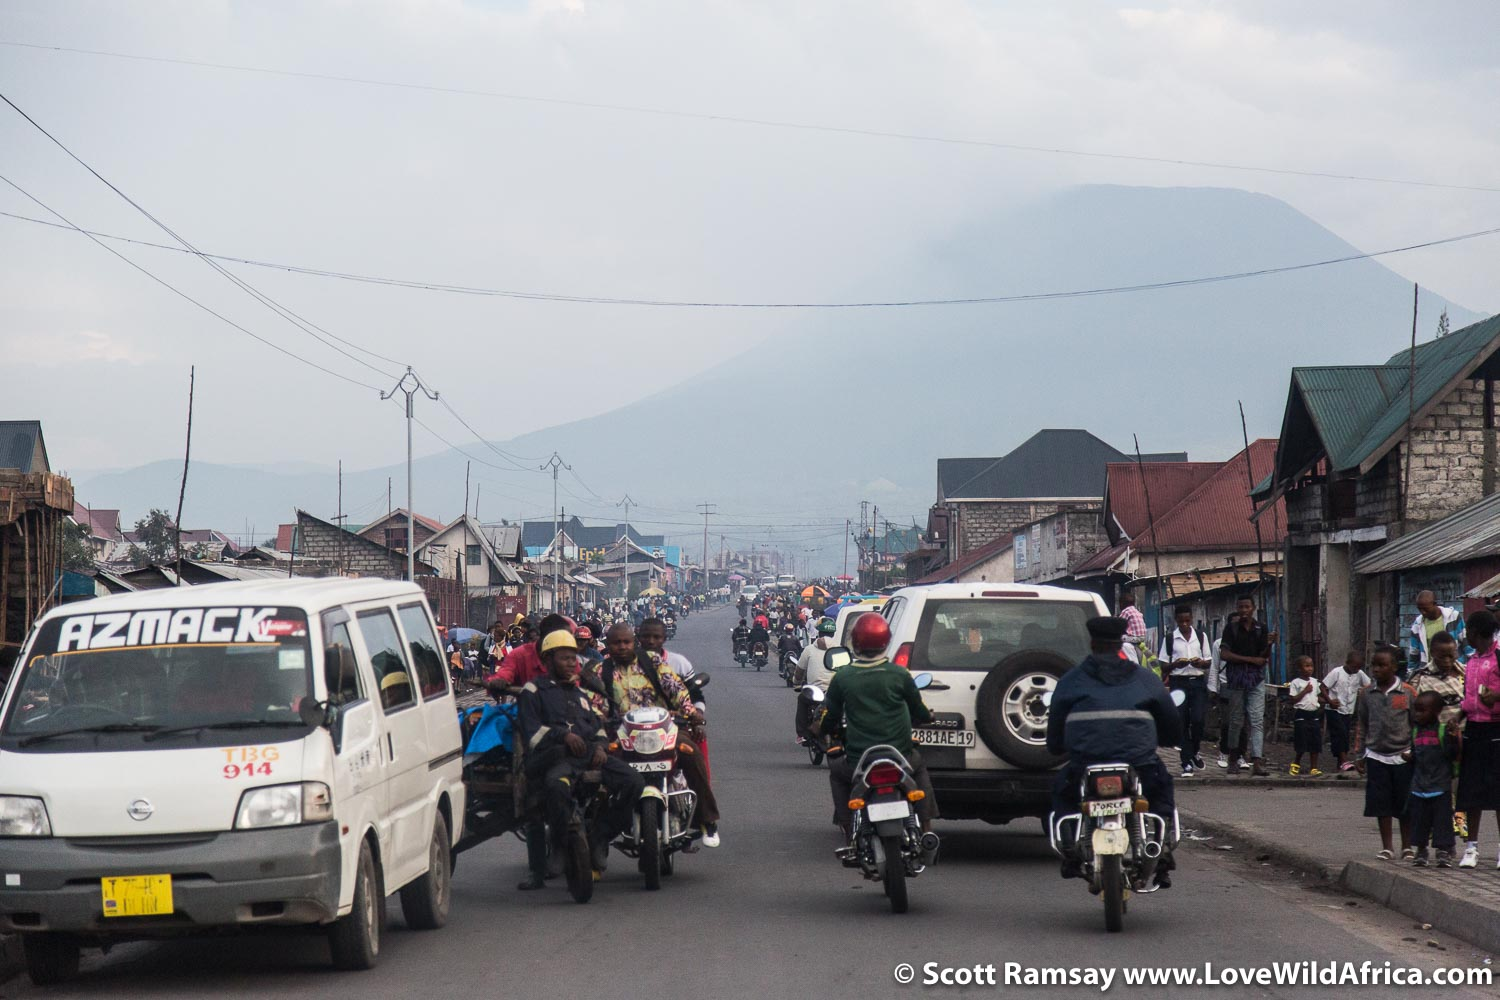 The city of Goma's skyline is dominated by the silhouette of Mount Nyiragongo, 20 kilometres to the north.